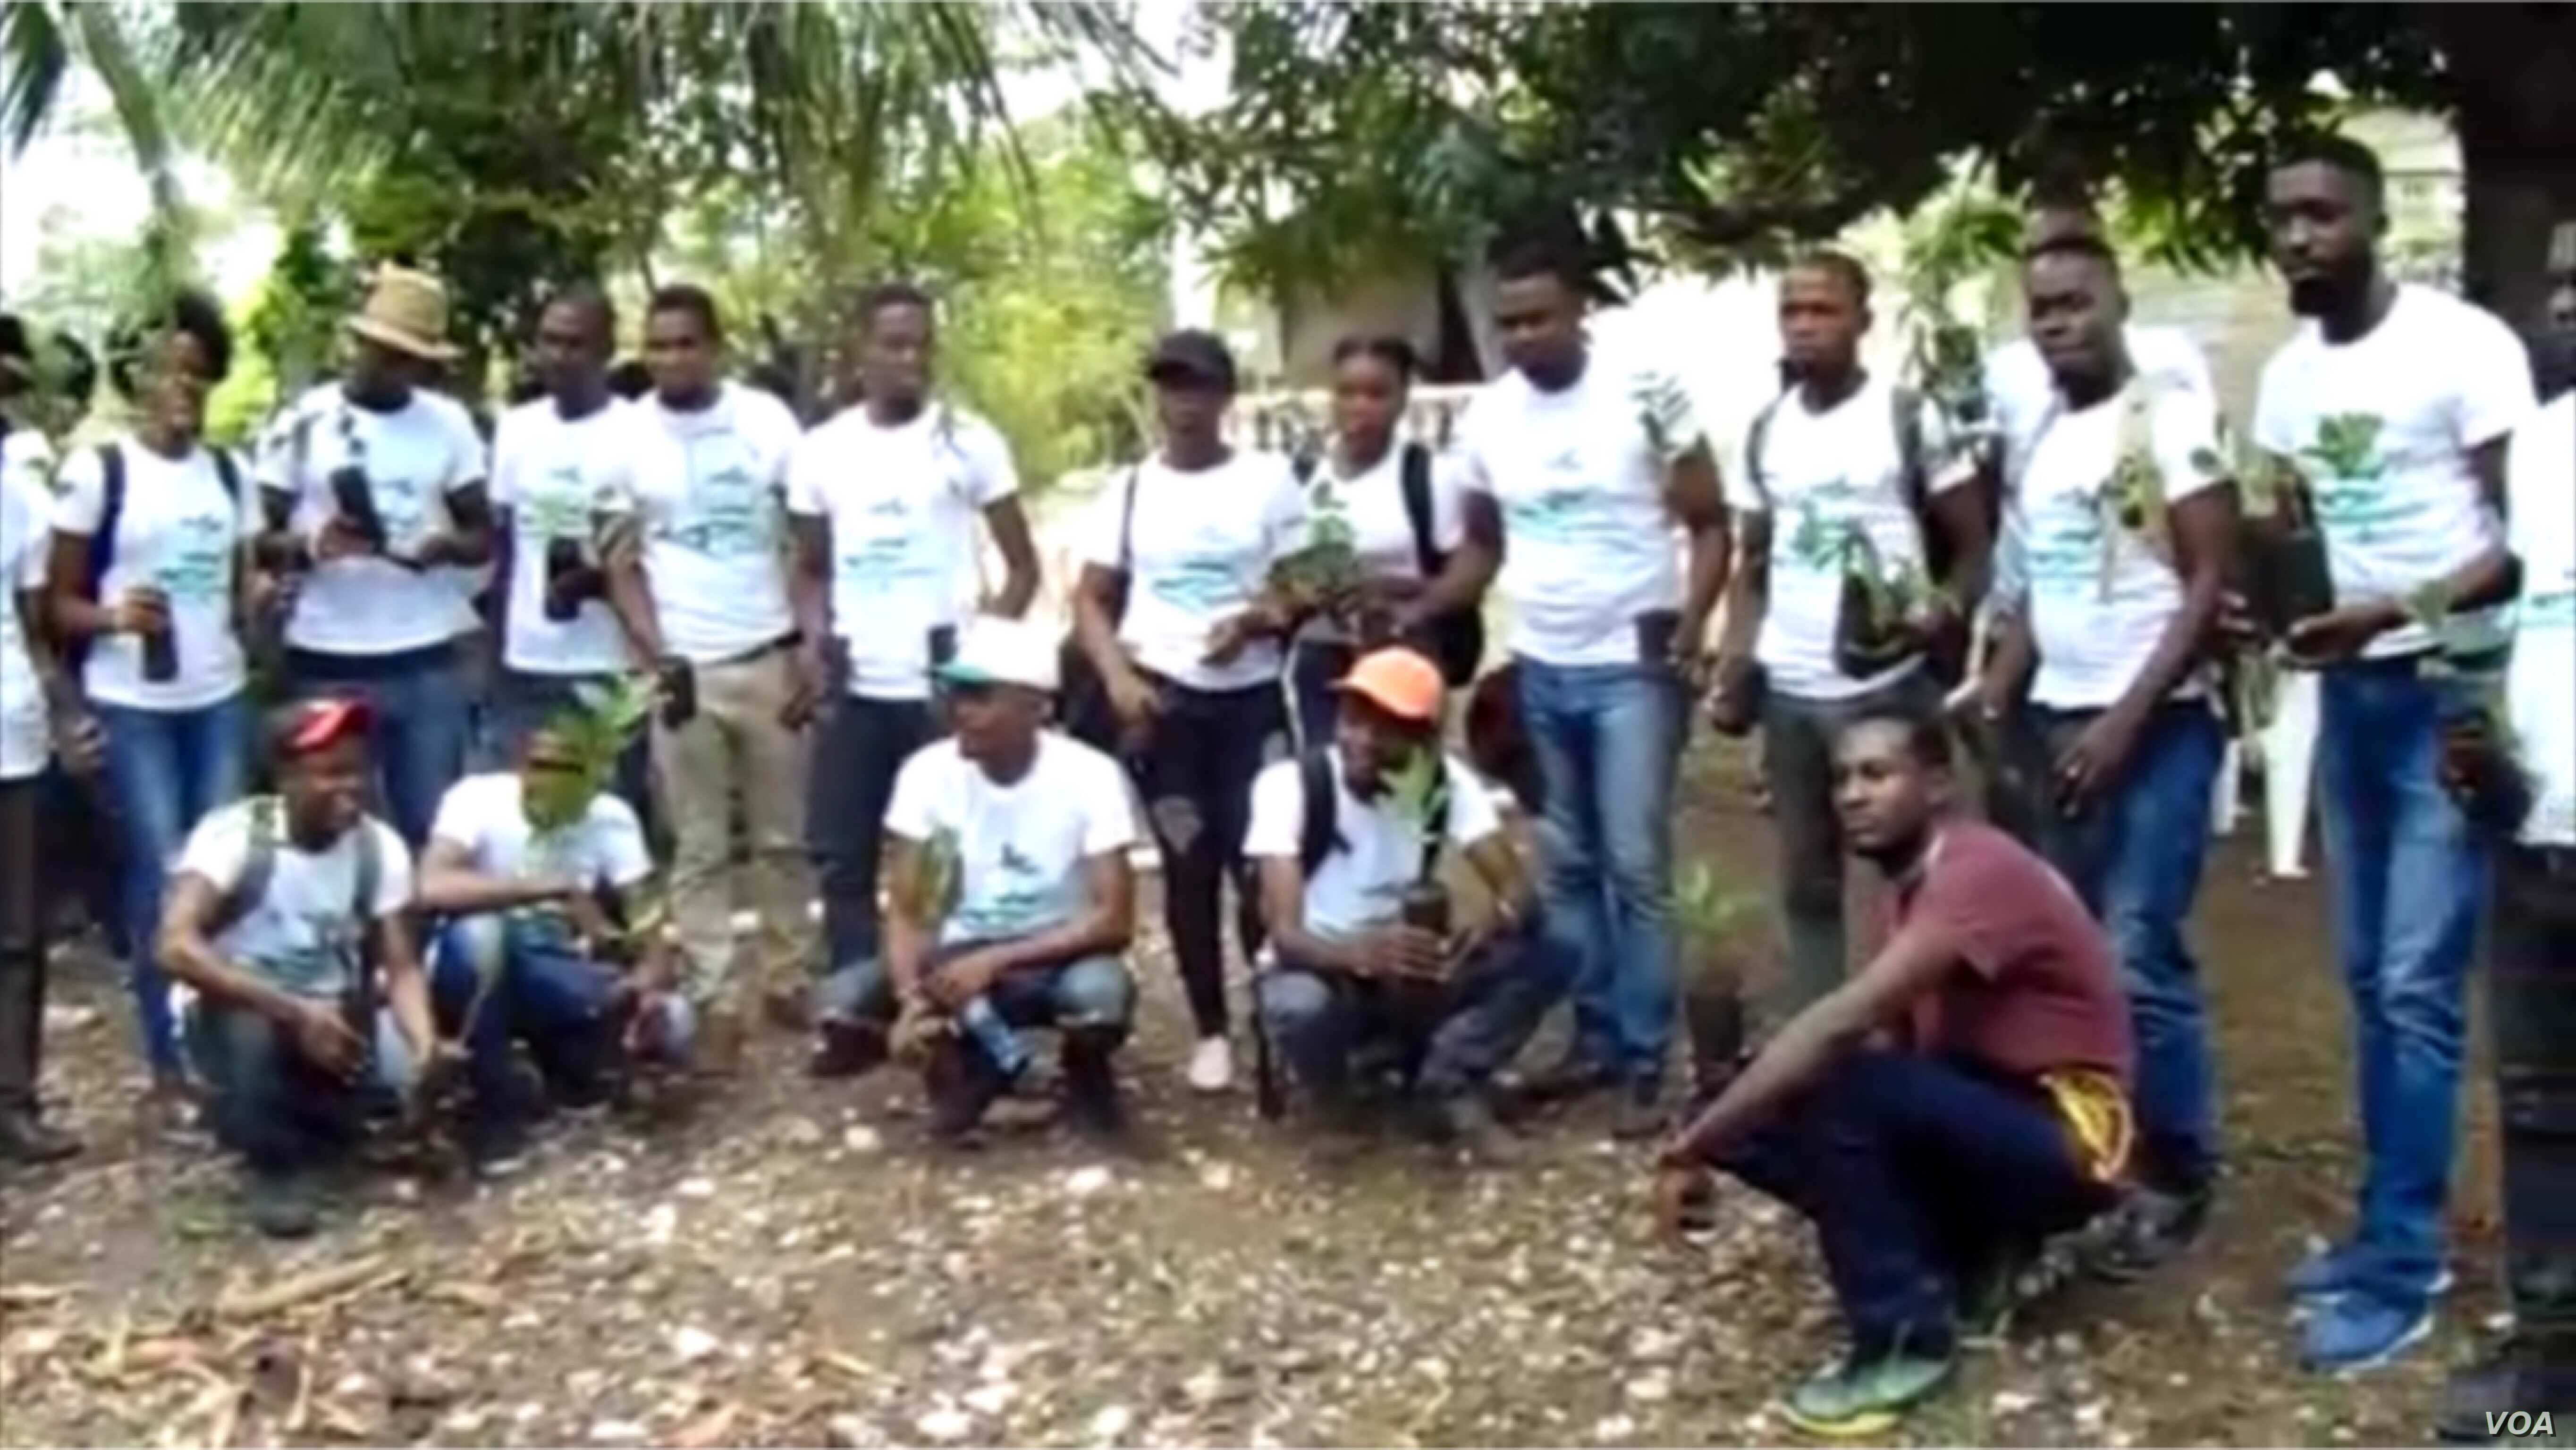 Members of Rotaract Club hold prepare to plant trees in Beret, Haiti for World Environment Day.